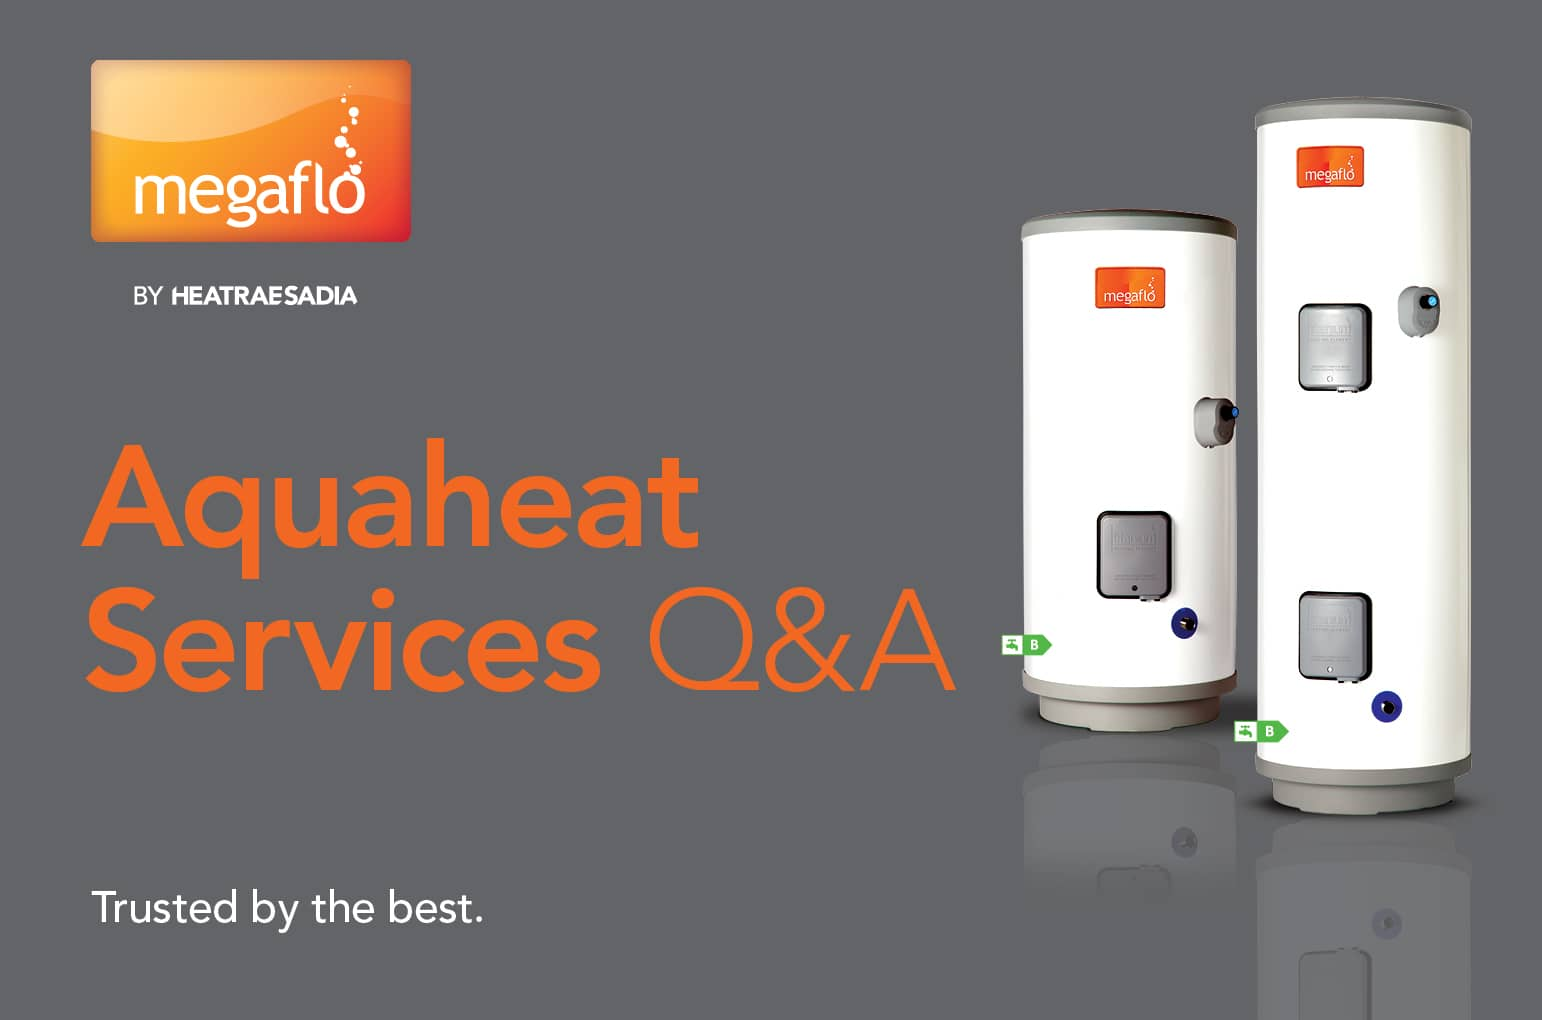 Aquaheat Services Q&A